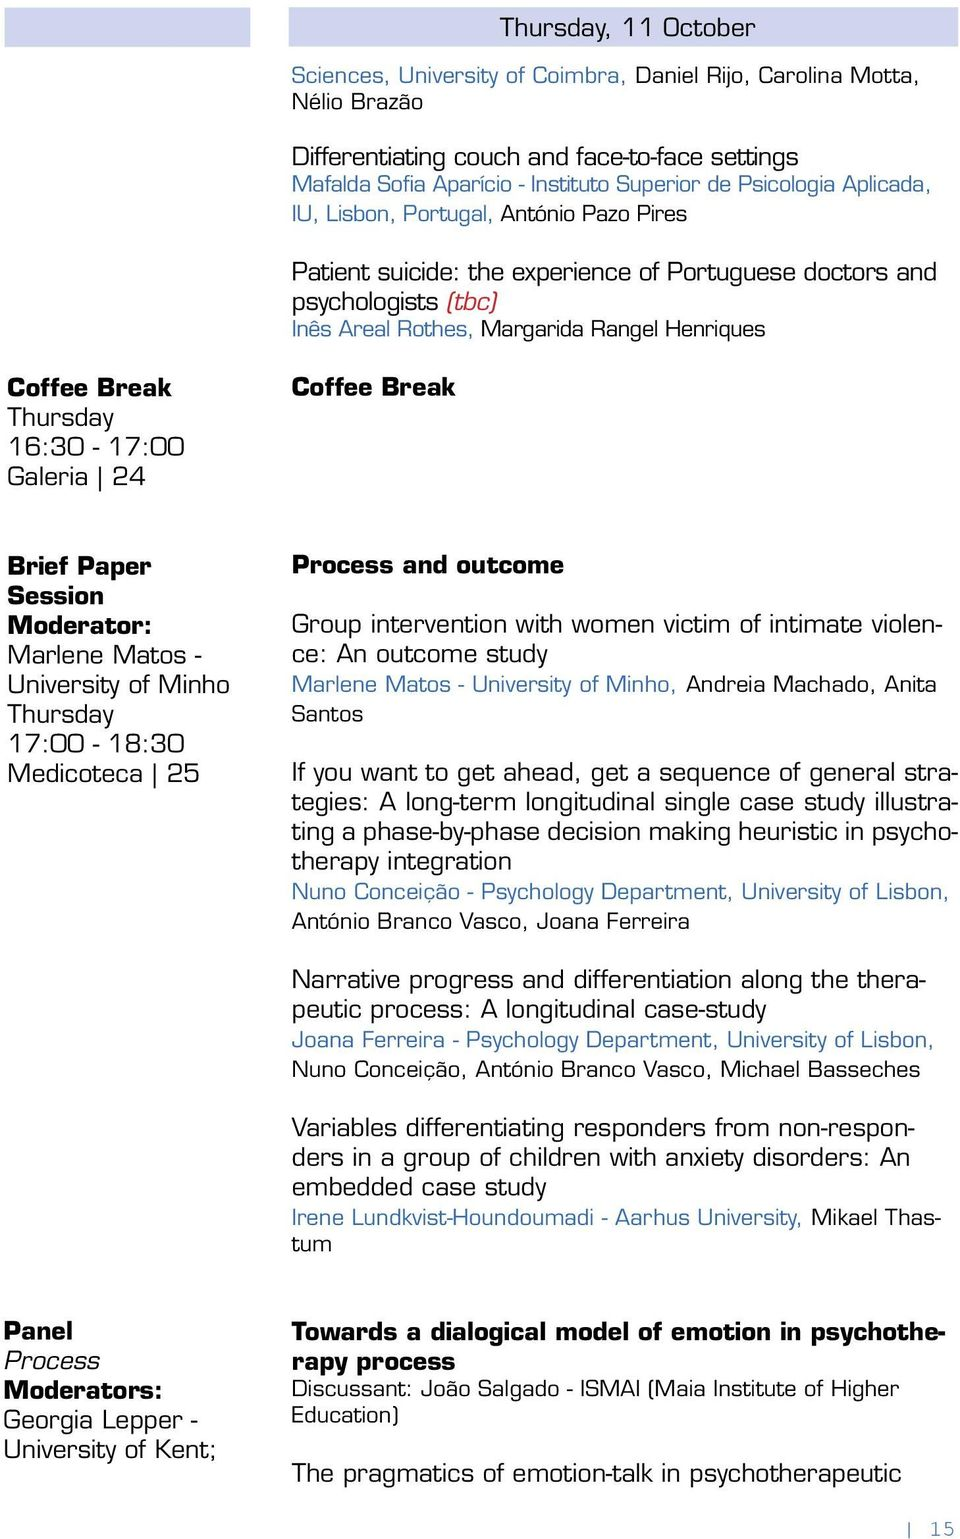 Galeria 24 Coffee Break Marlene Matos - University of Minho 17:00-18:30 Medicoteca 25 Process and outcome Group intervention with women victim of intimate violence: An outcome study Marlene Matos -